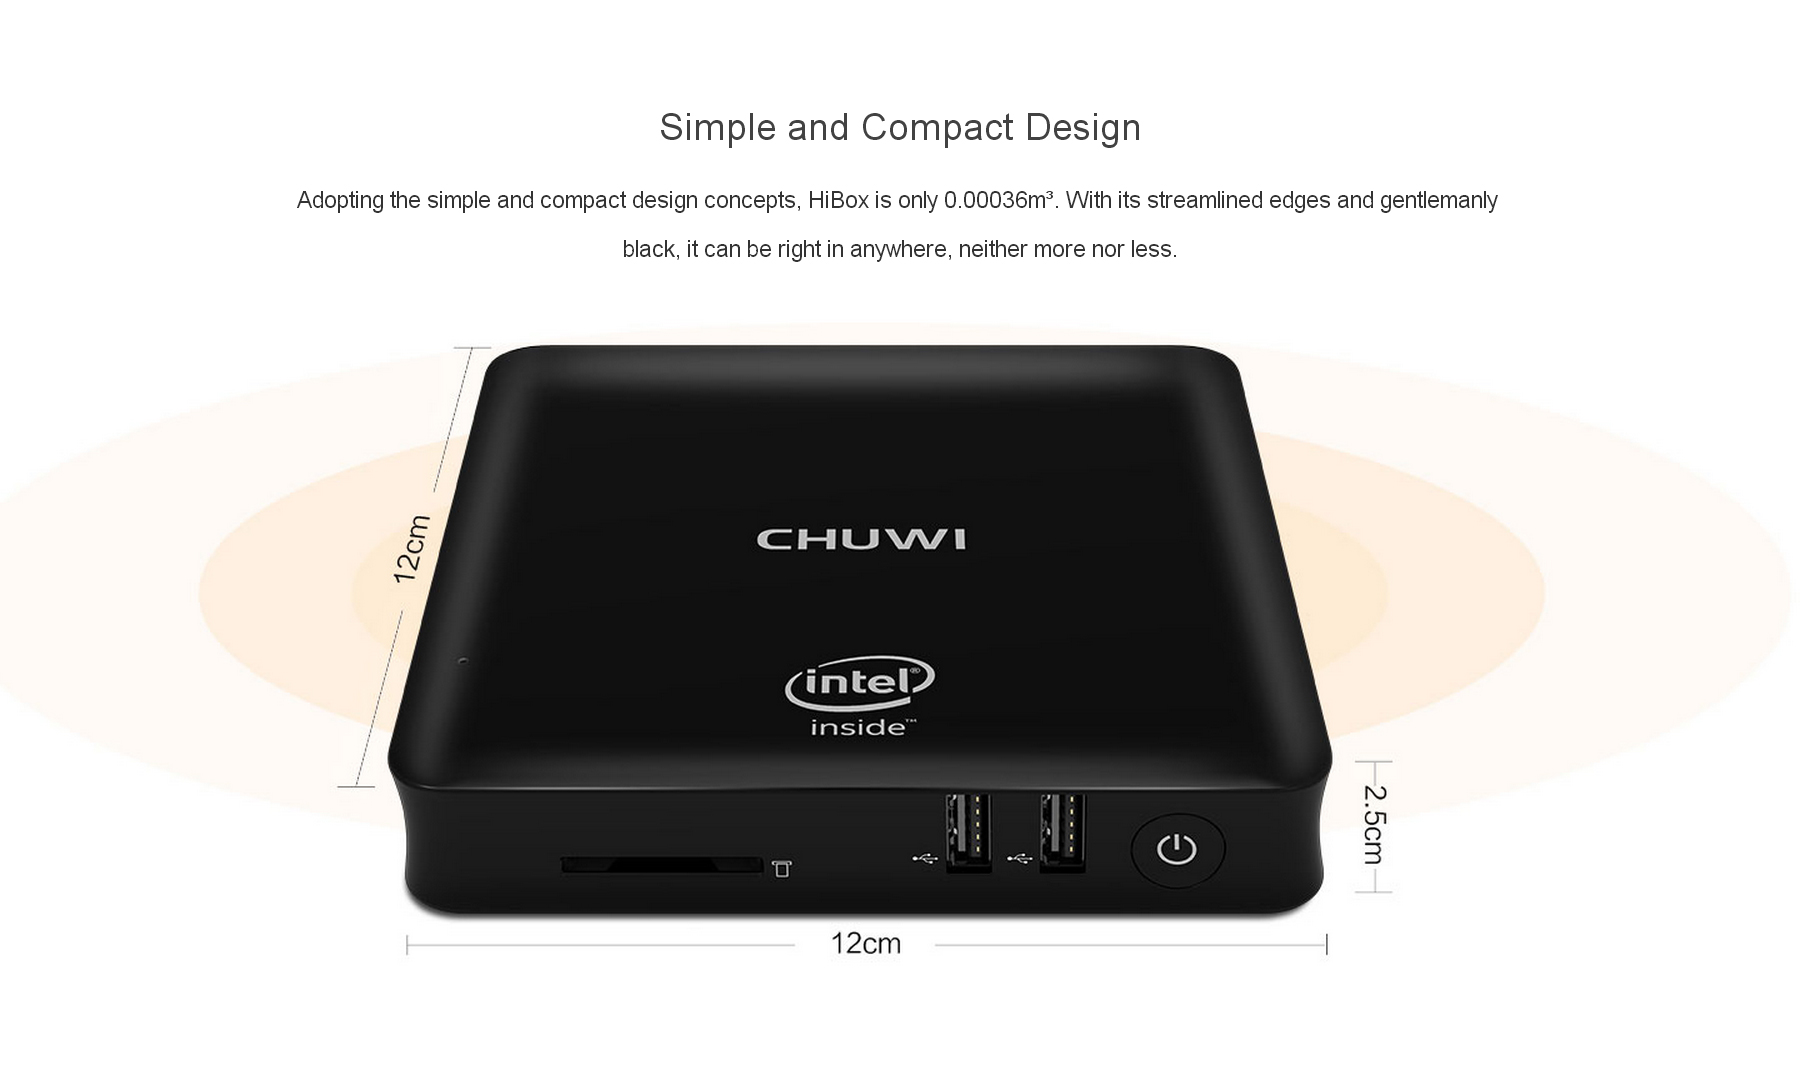 CHUWI HiBox Mini PC Android 5.1 + Window 10 Doble OS de 64bits